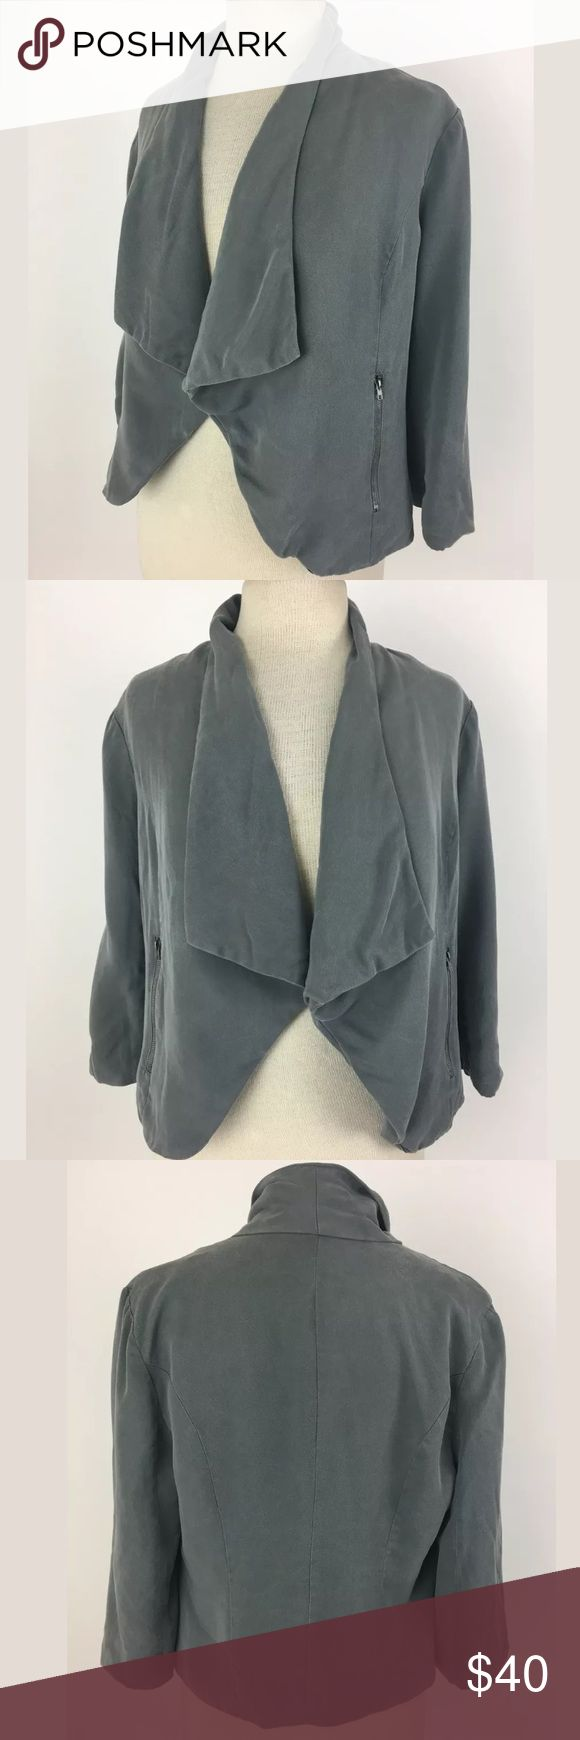 41 Hawthorn Stitch Fix jacket Length Shoulder To Hem: 22 Bust: 38 Waist: 30 Fabric Content: 100% Lyocell This is actually marked medium, but does not fit like a typical medium which is why I put it under small. I am normally a medium and I can't even reach forward wearing this. Please buy accordingly.  Item #107 41 Hawthorn Jackets & Coats